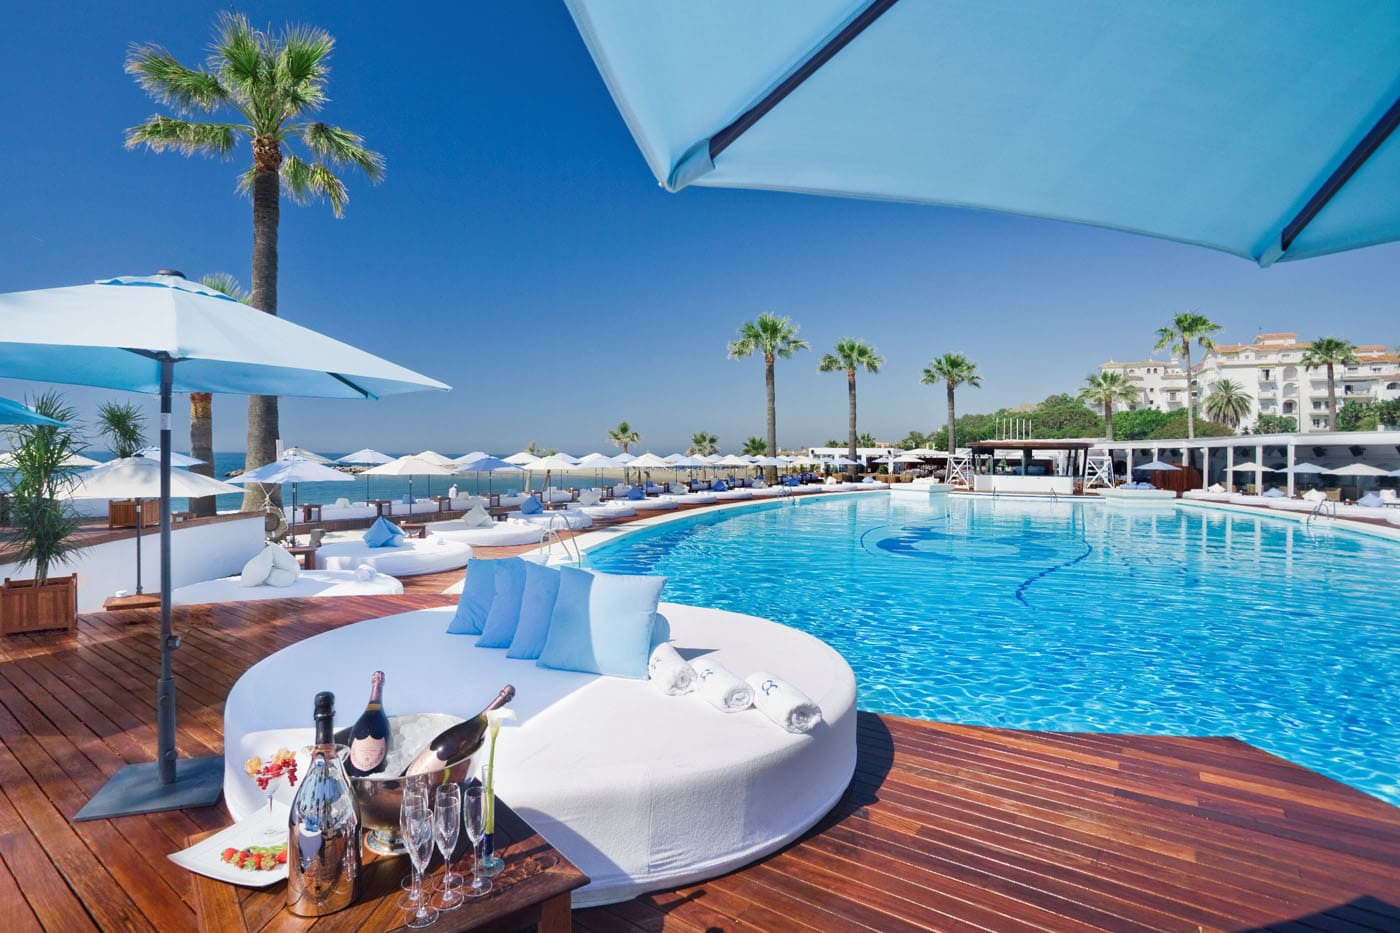 Marbella - 24 hour style guide to Marbs! - The Style Traveller